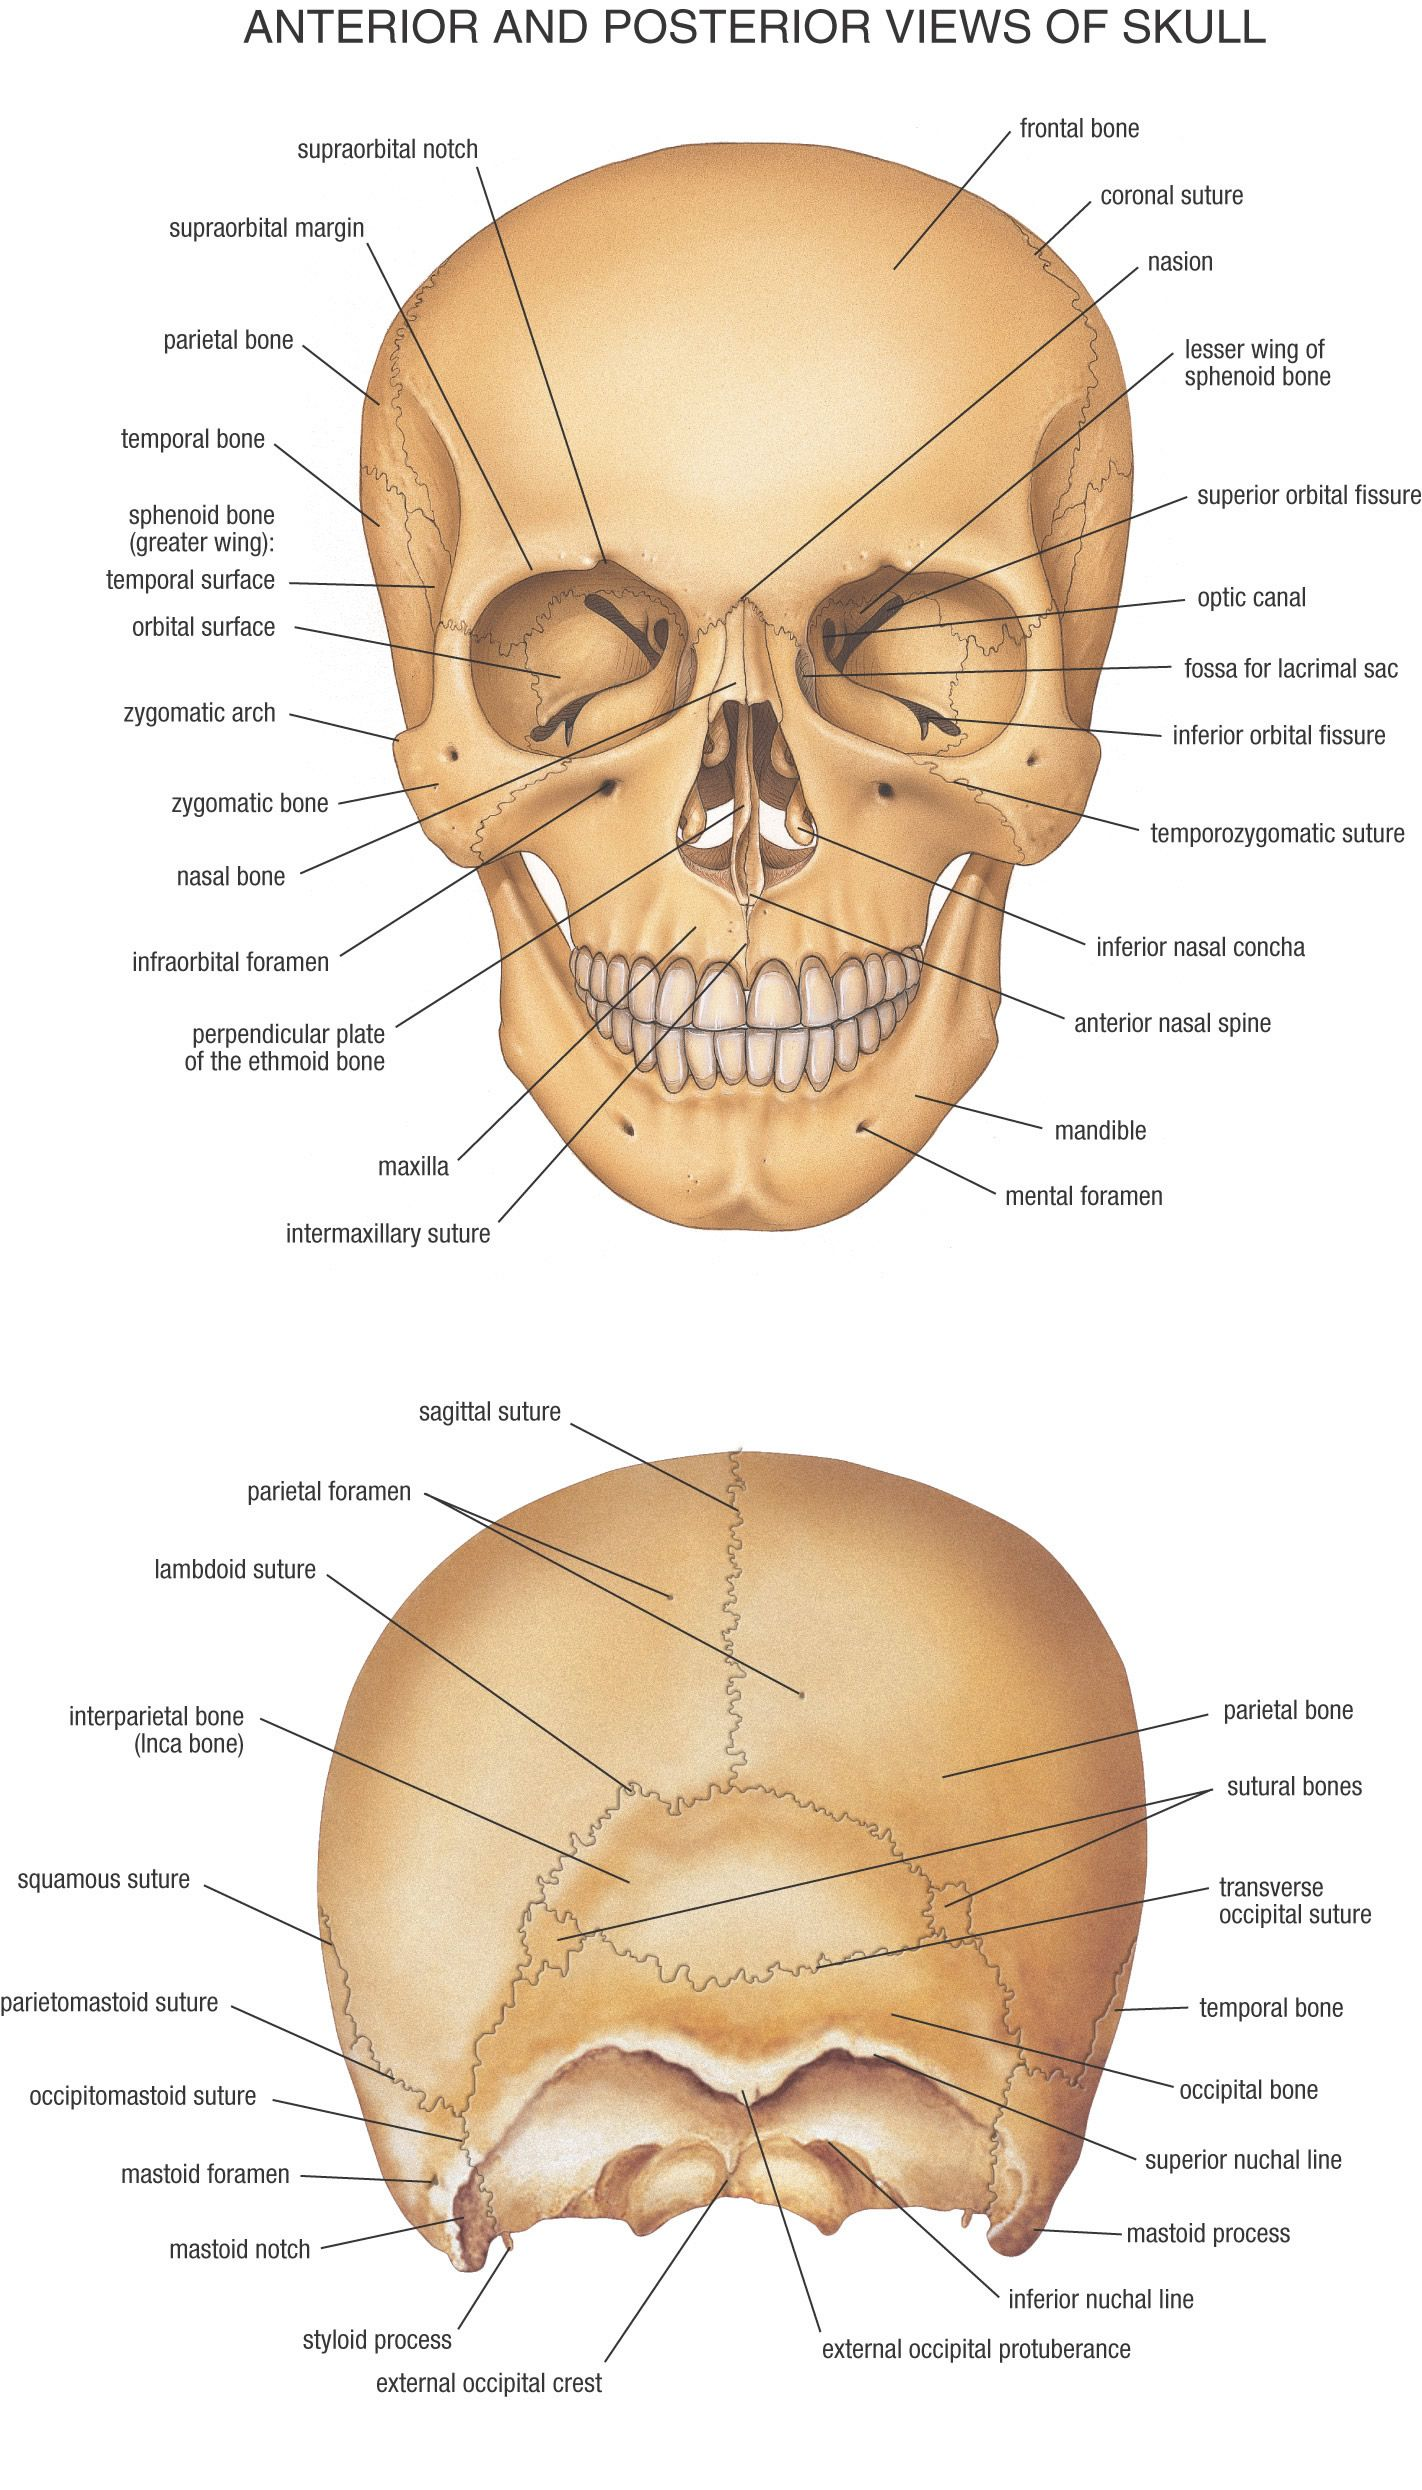 HB Anatomy Skull | keep | useful | Pinterest | Anatomy, Medical and ...